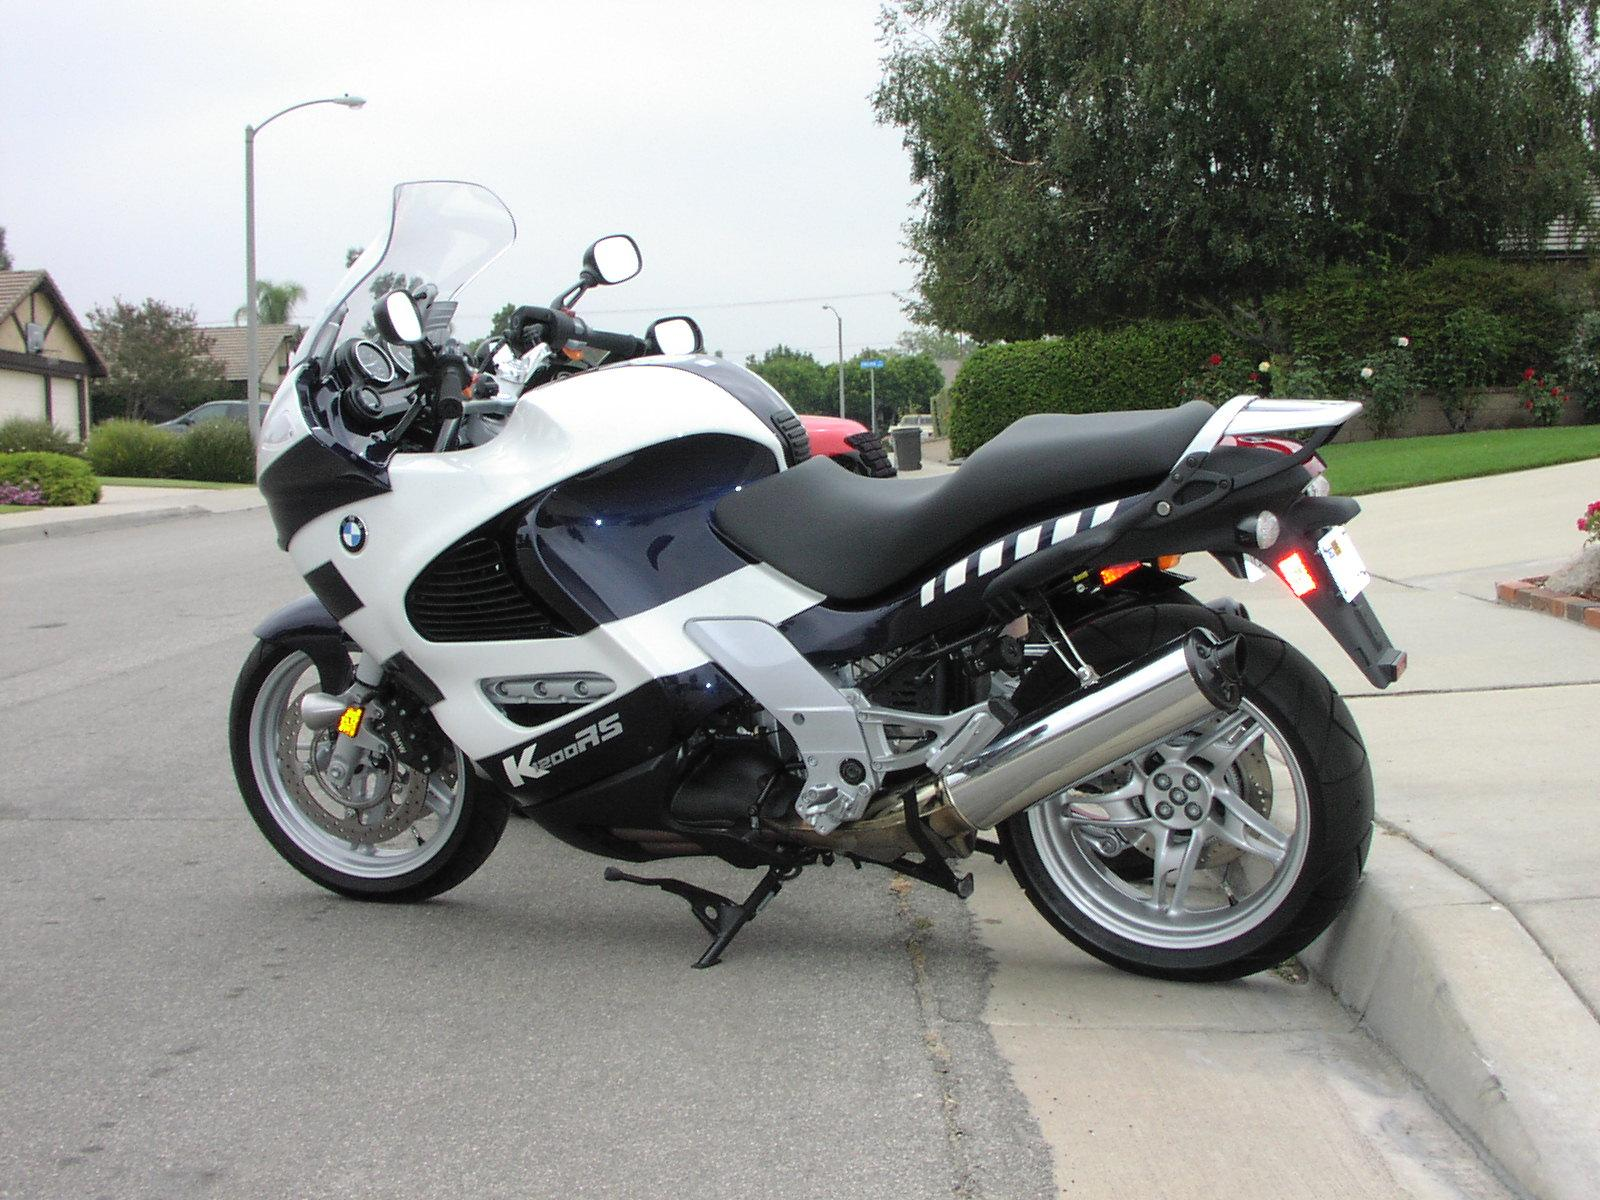 2018 bmw k1200. brilliant k1200 new bmw k1200rs pictures throughout 2018 bmw k1200 e